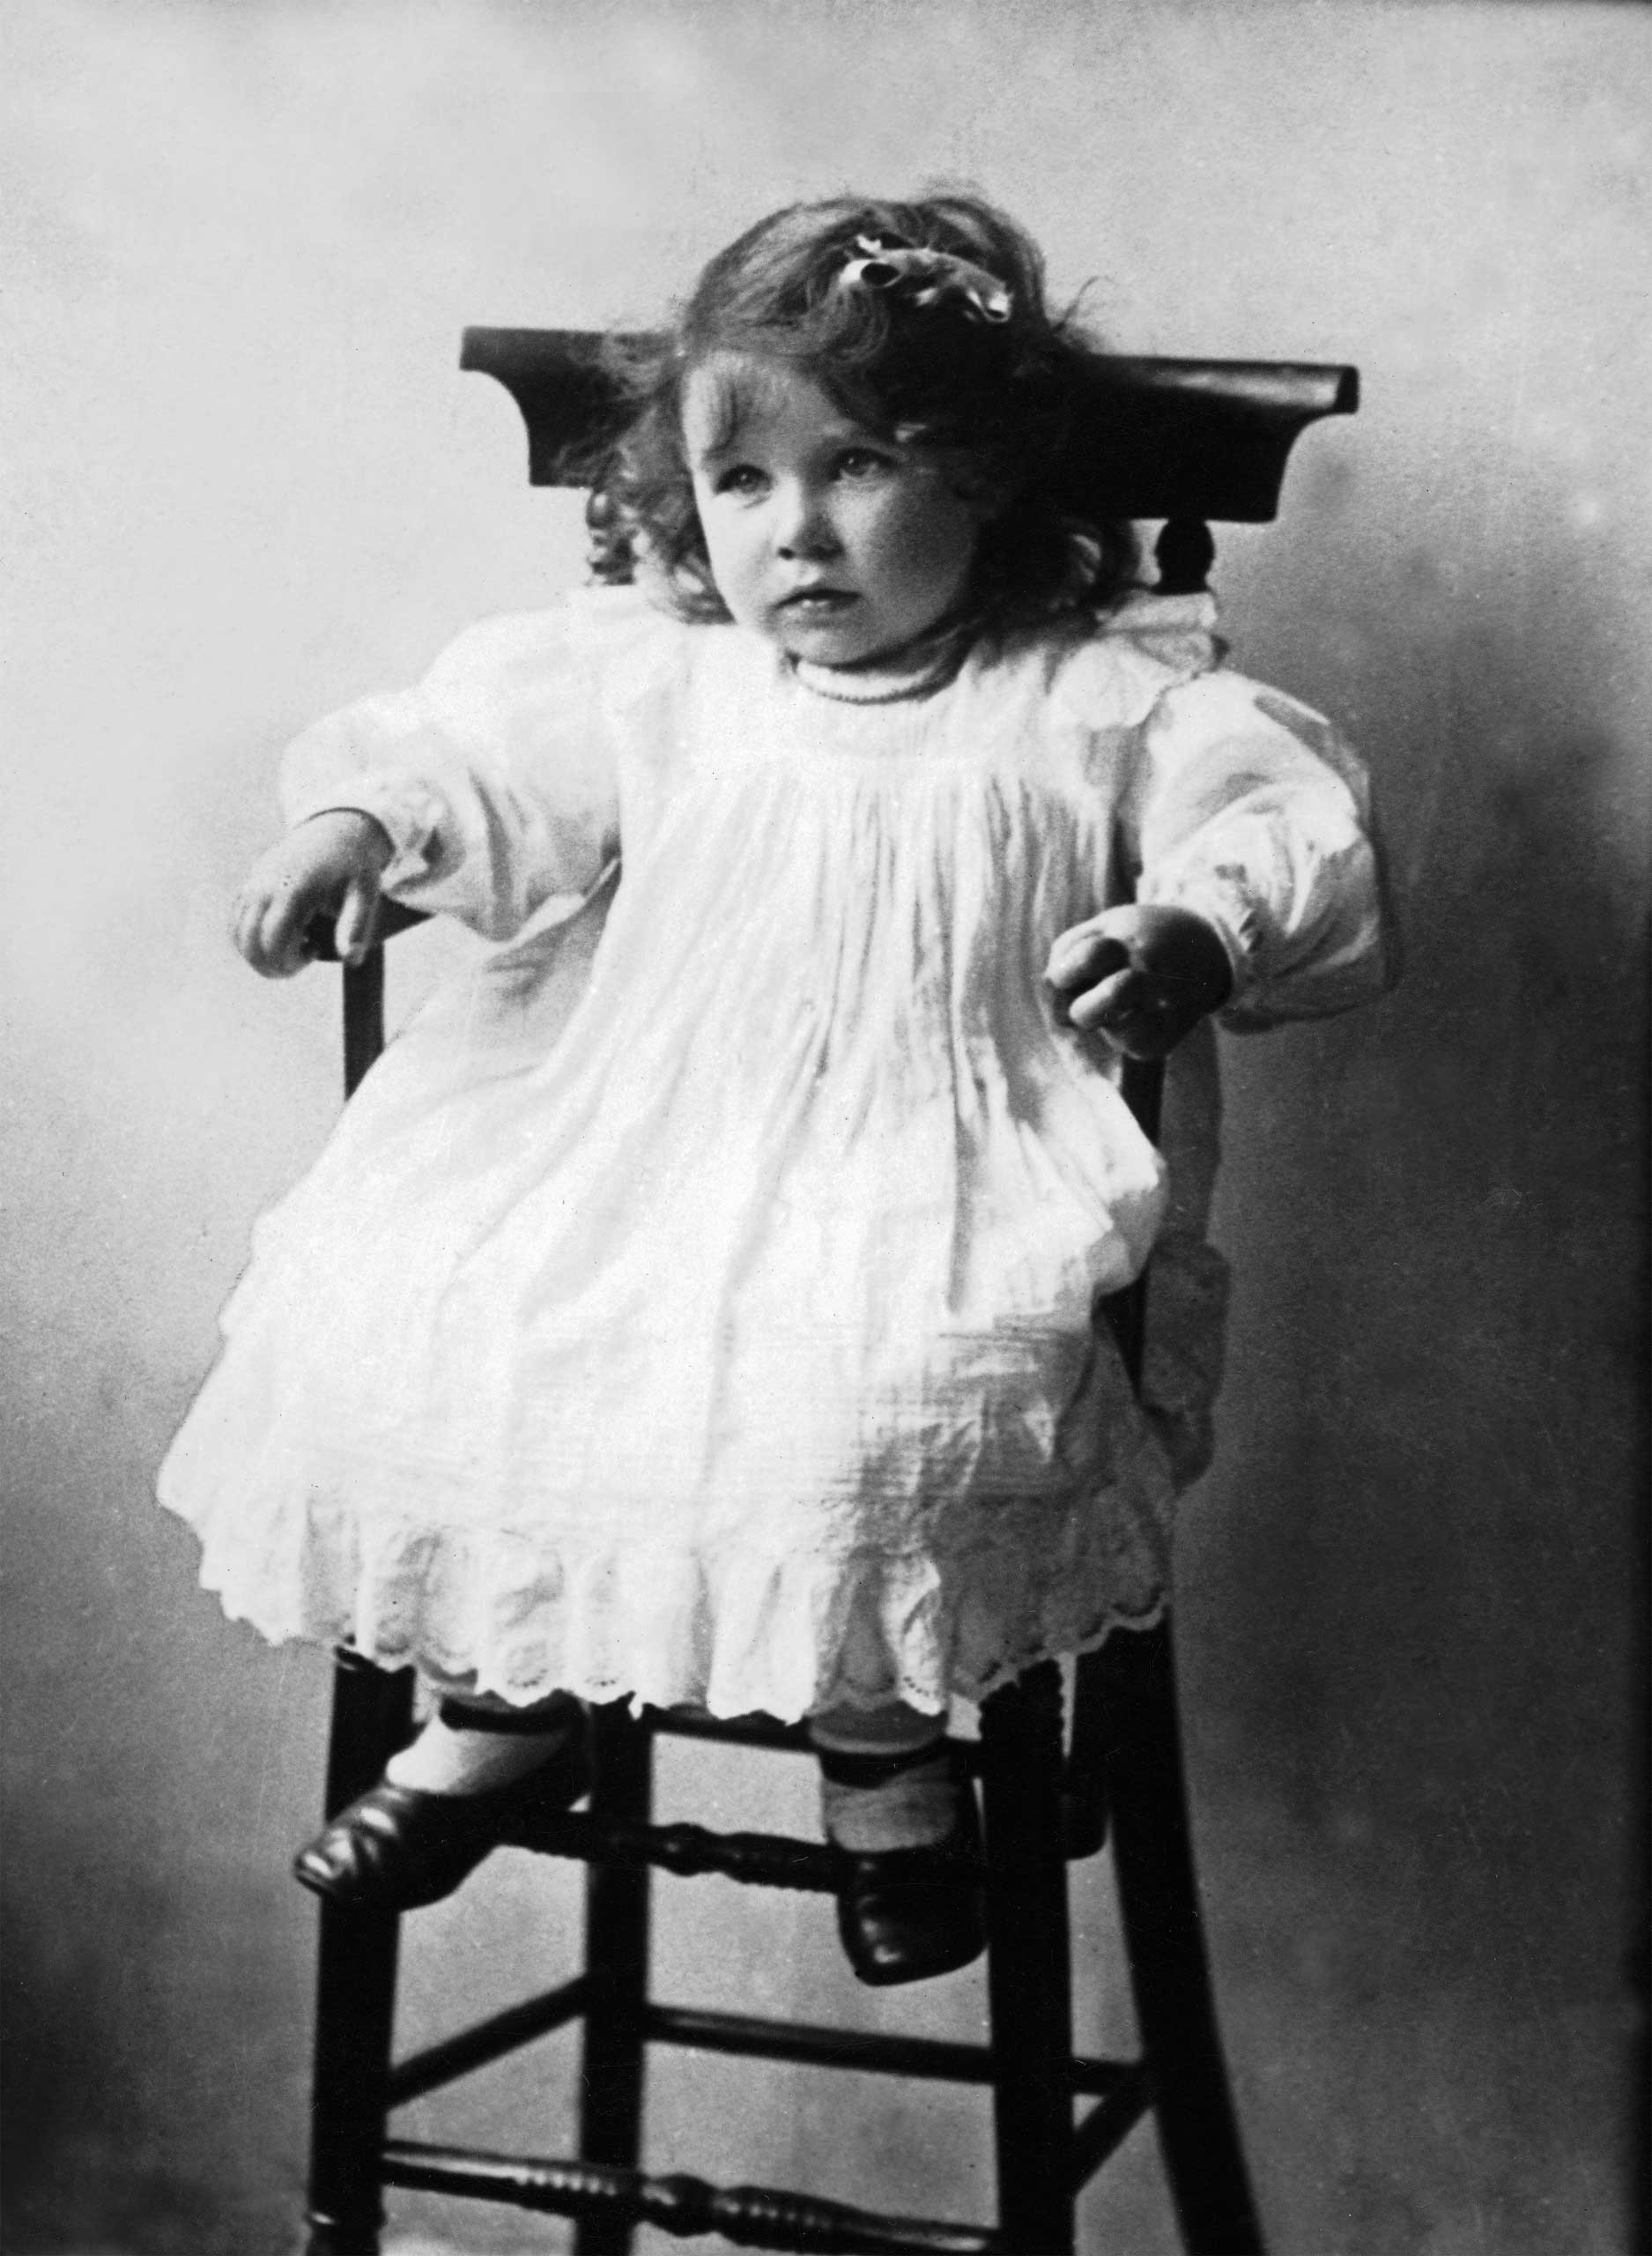 Elizabeth Bowes-Lyon, born to the Scottish aristocracy in 1900, would become royal through marriage to the future George VI. Their eldest daughter is the current Queen.